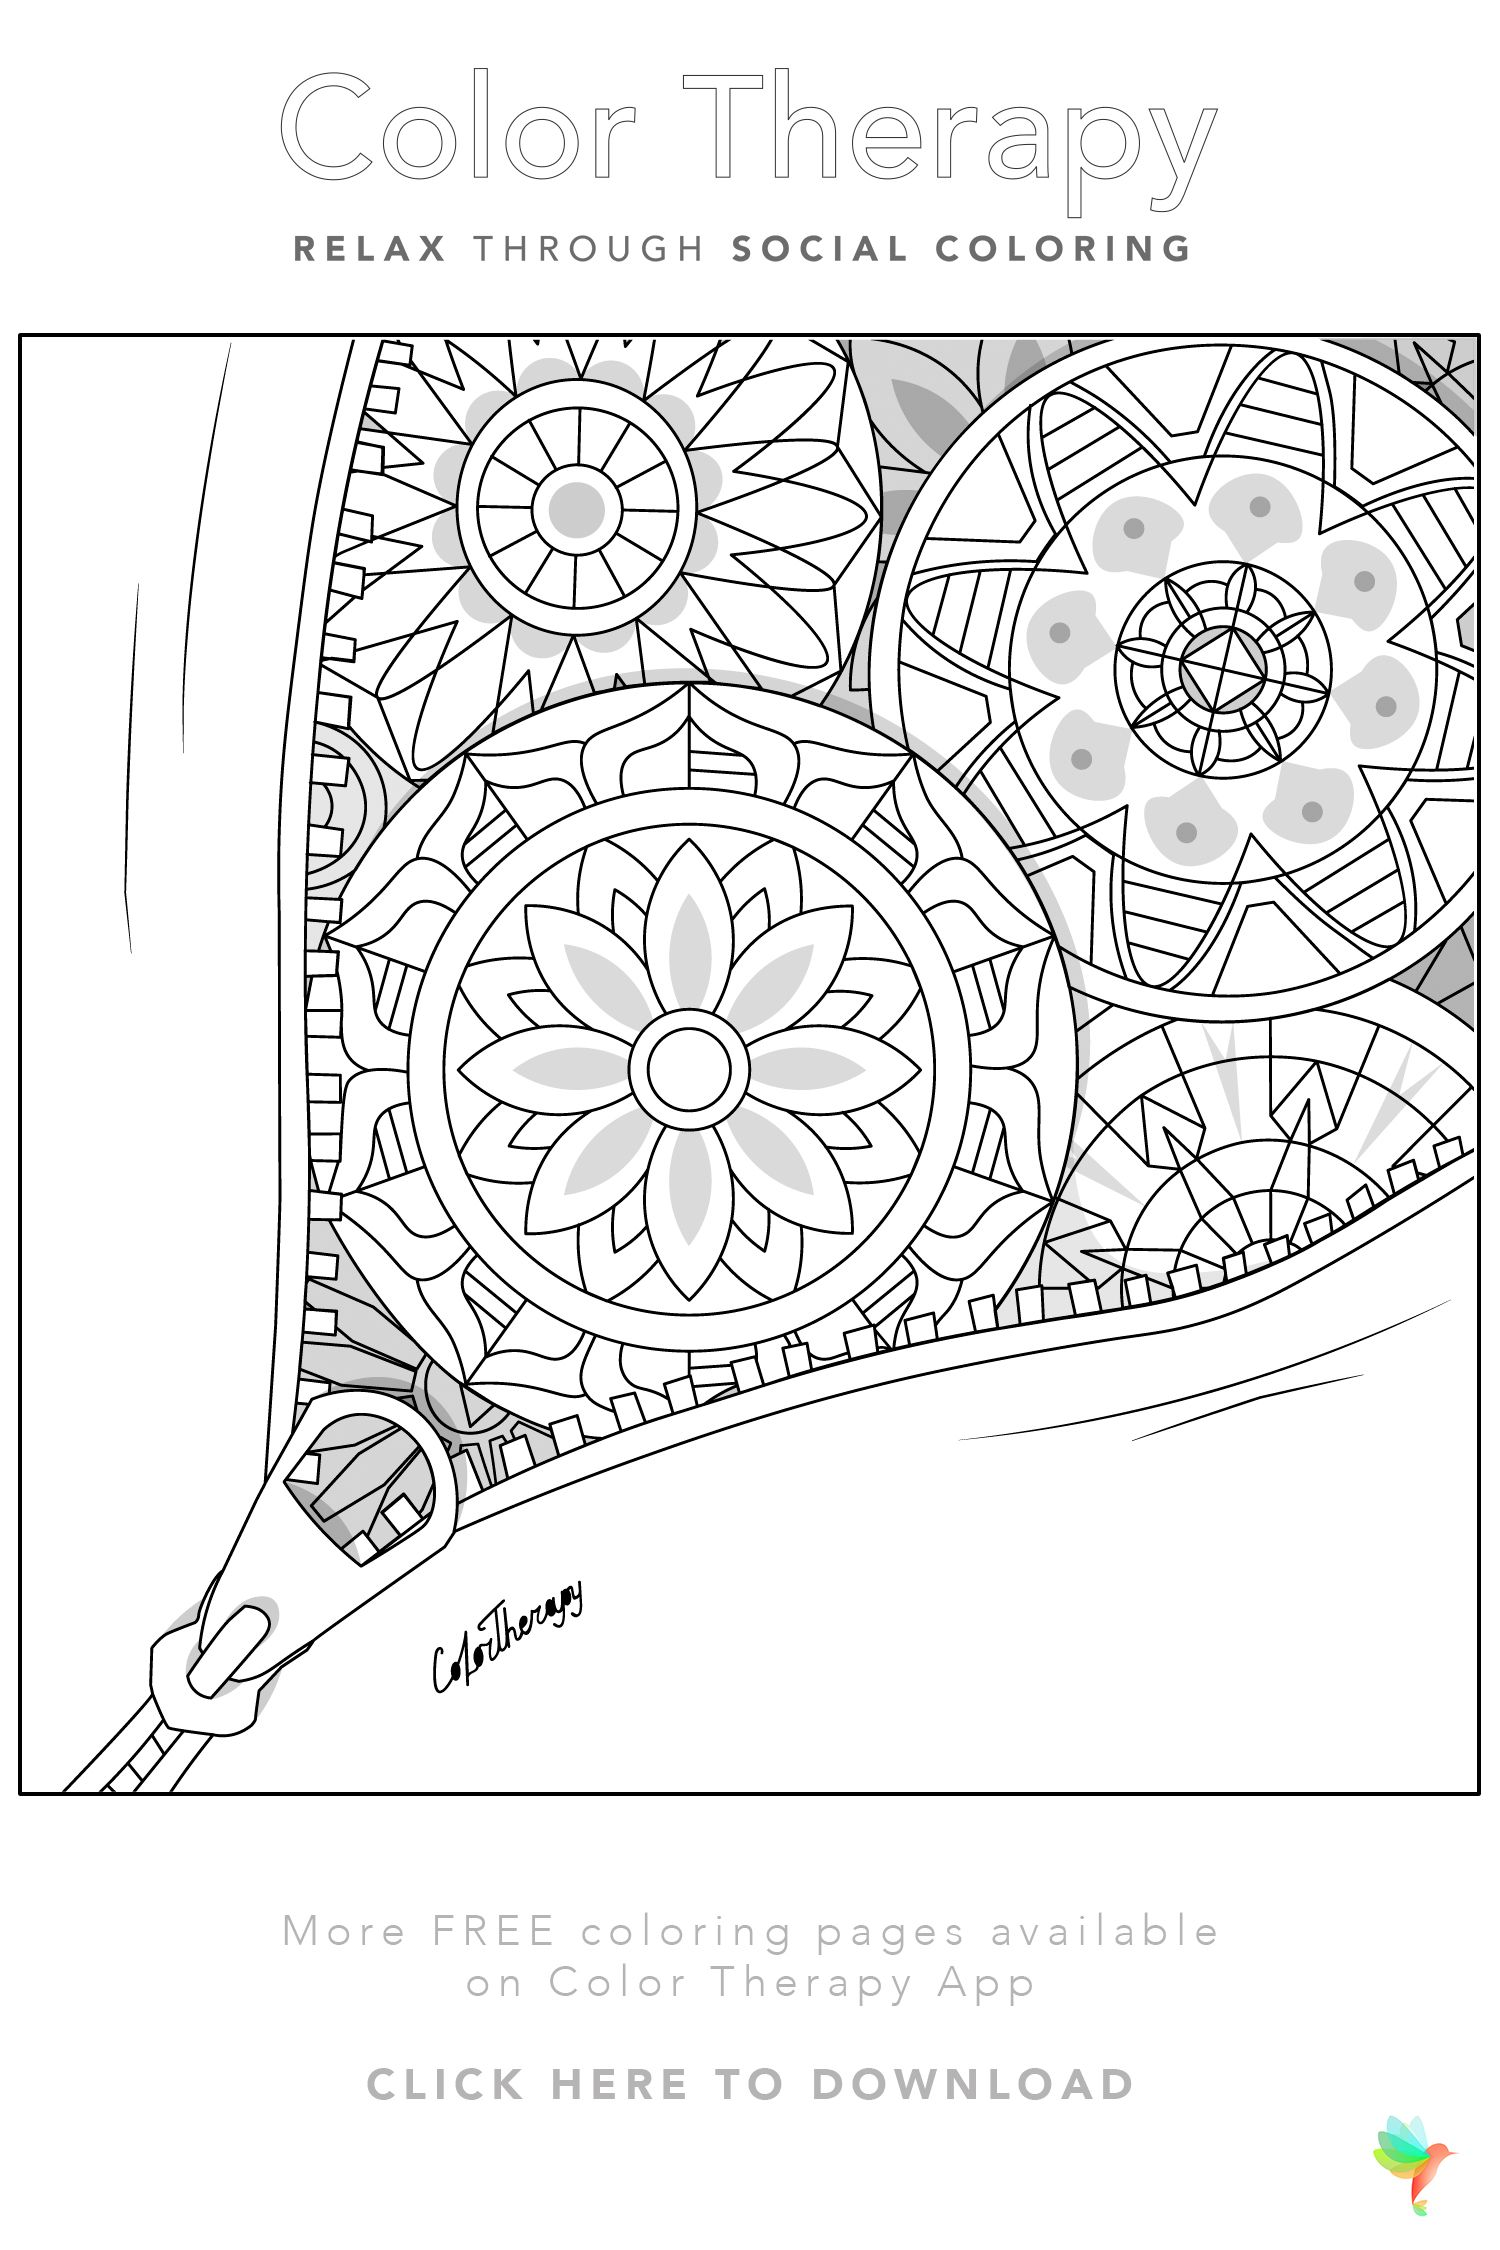 Color Therapy Gift Of The Day Free Coloring Template Color Therapy Pattern Coloring Pages Color Therapy App